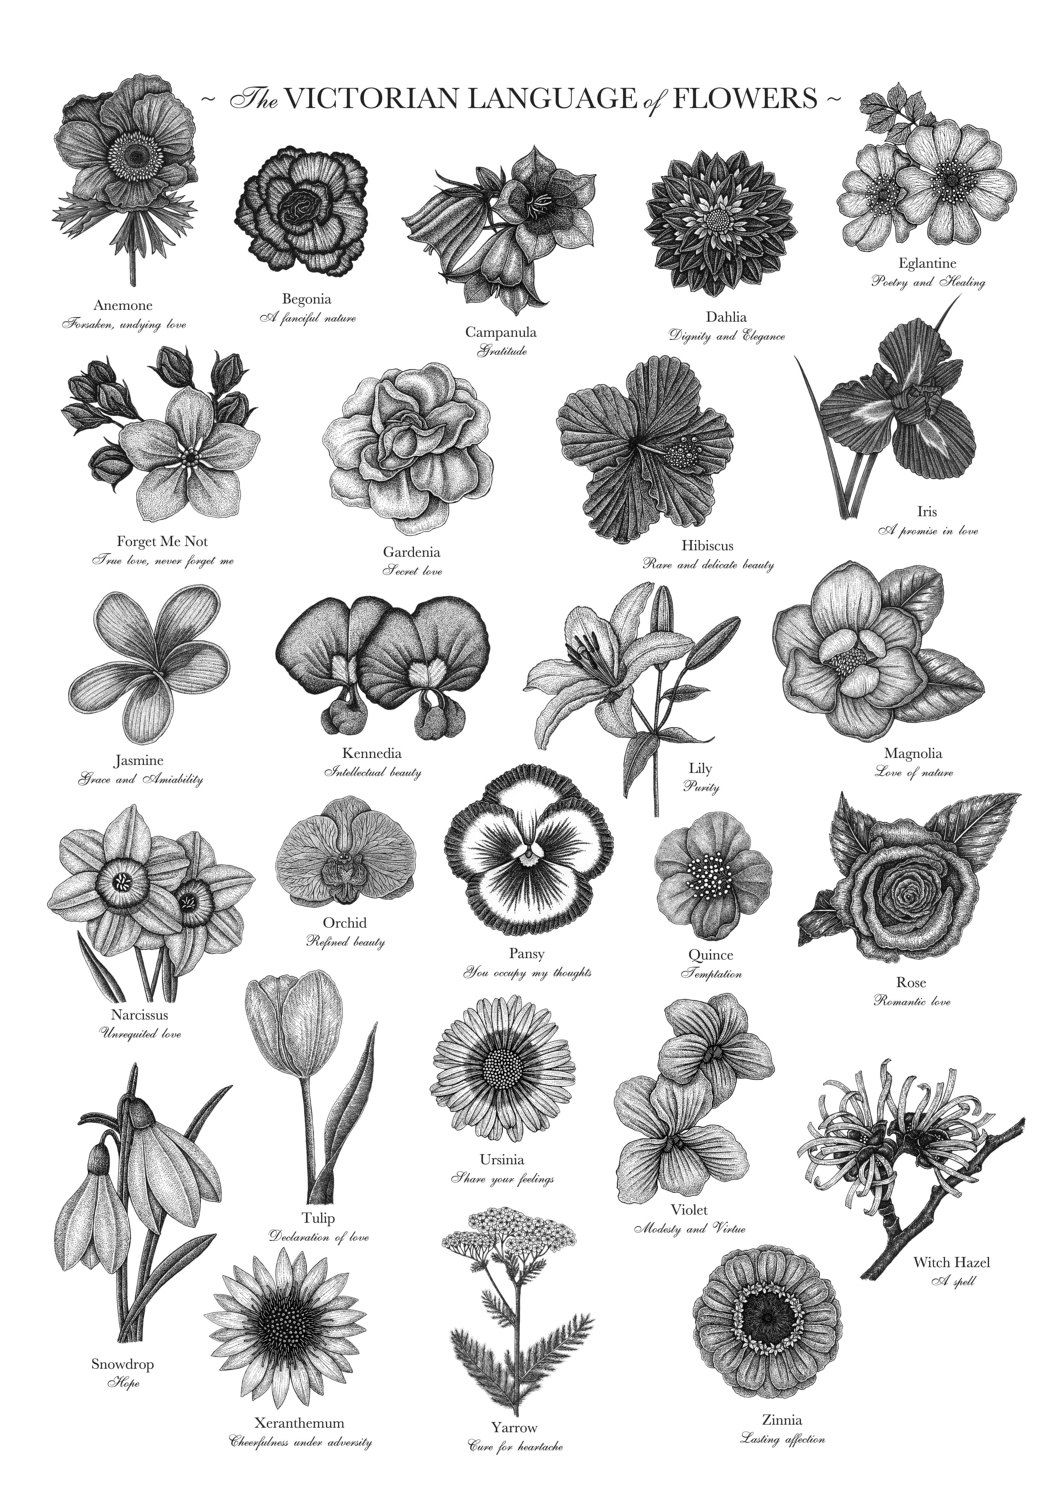 Victorian language of flowers print a to z of flowers flower the victorian language of flowers a to z a3 limited edition print by rheannonormond1 on izmirmasajfo